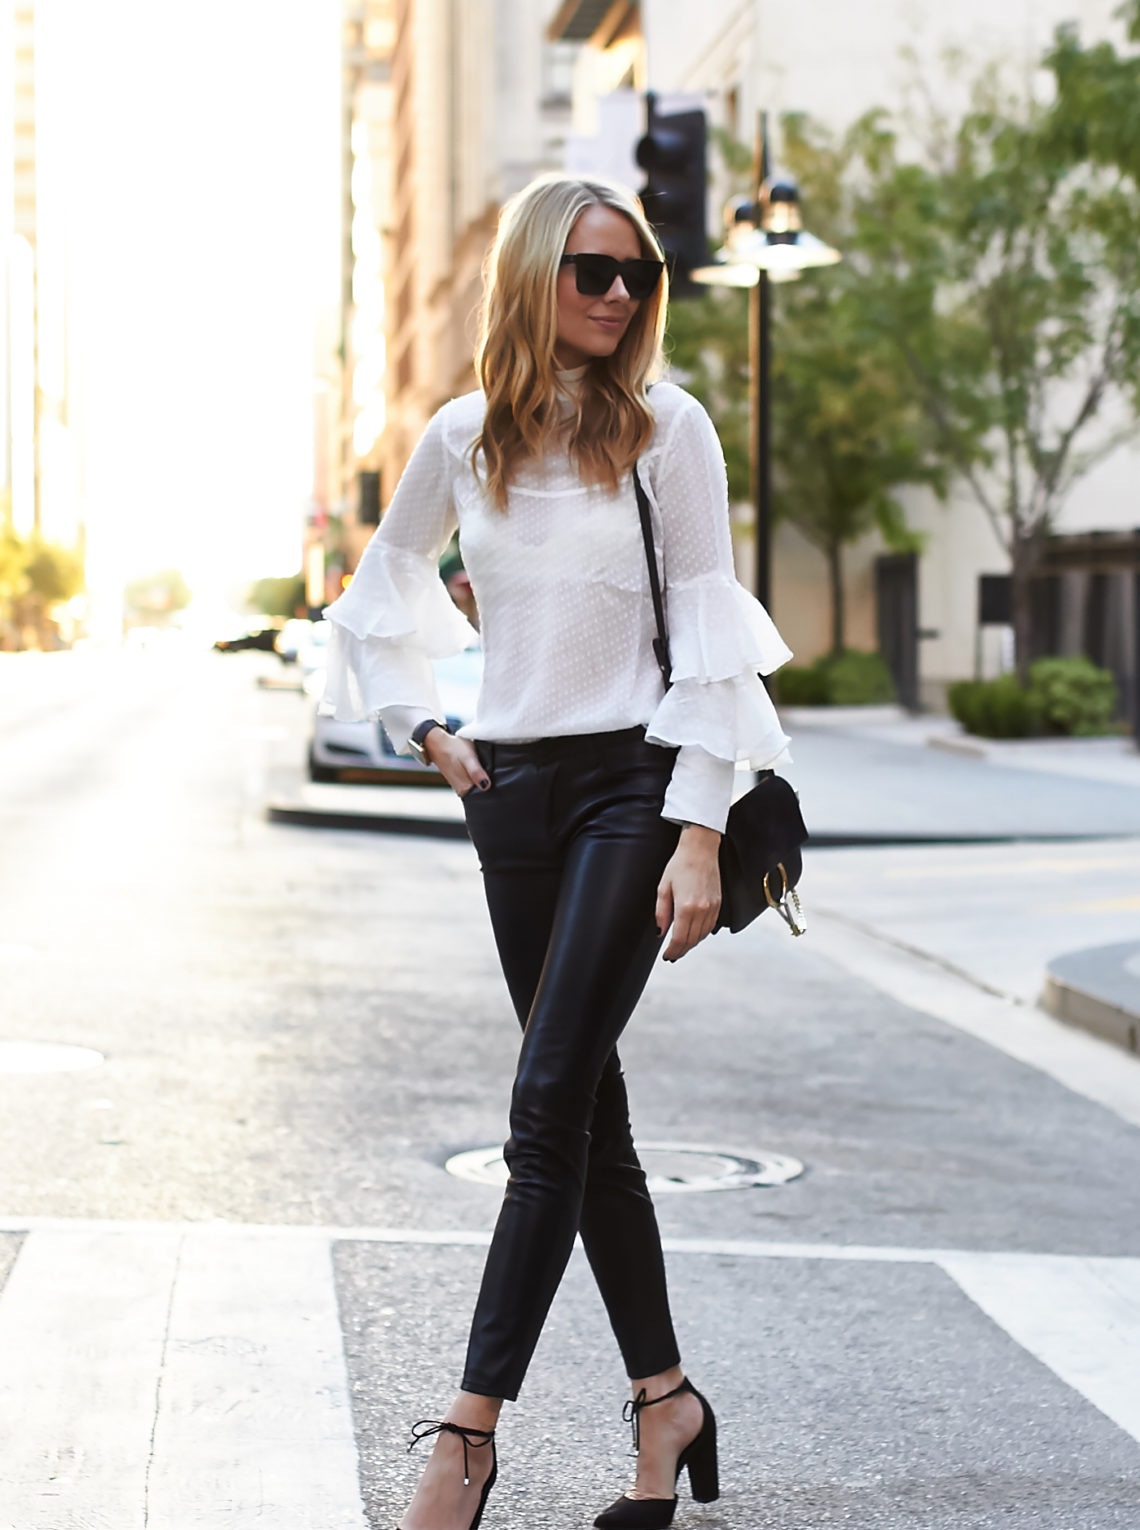 fashion-jackson-black-faux-leather-pants-white-ruffle-sleeve-blouse-black-bow-pumps